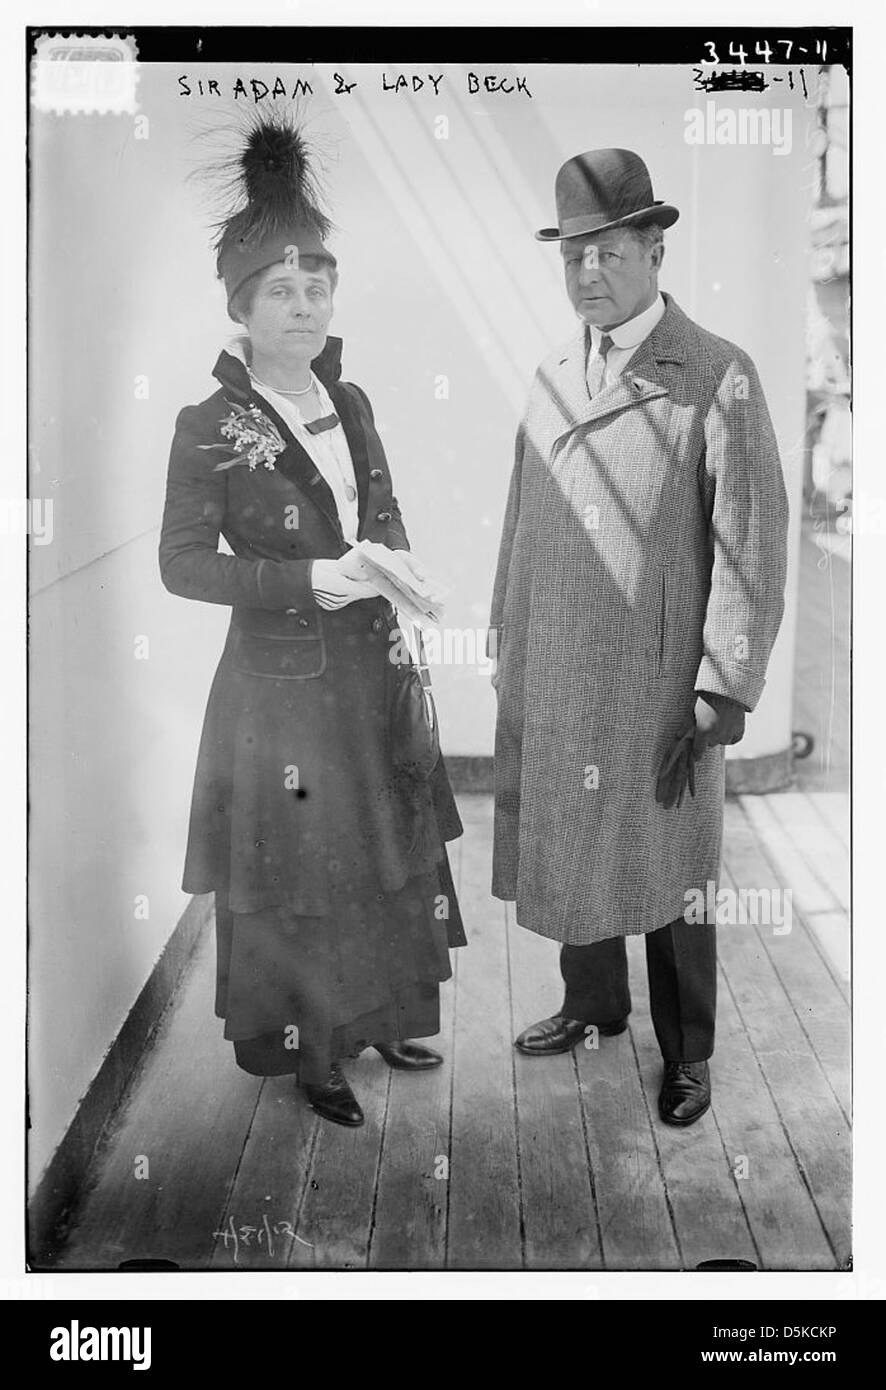 Sir Adam and Lady Beck (LOC) - Stock Image